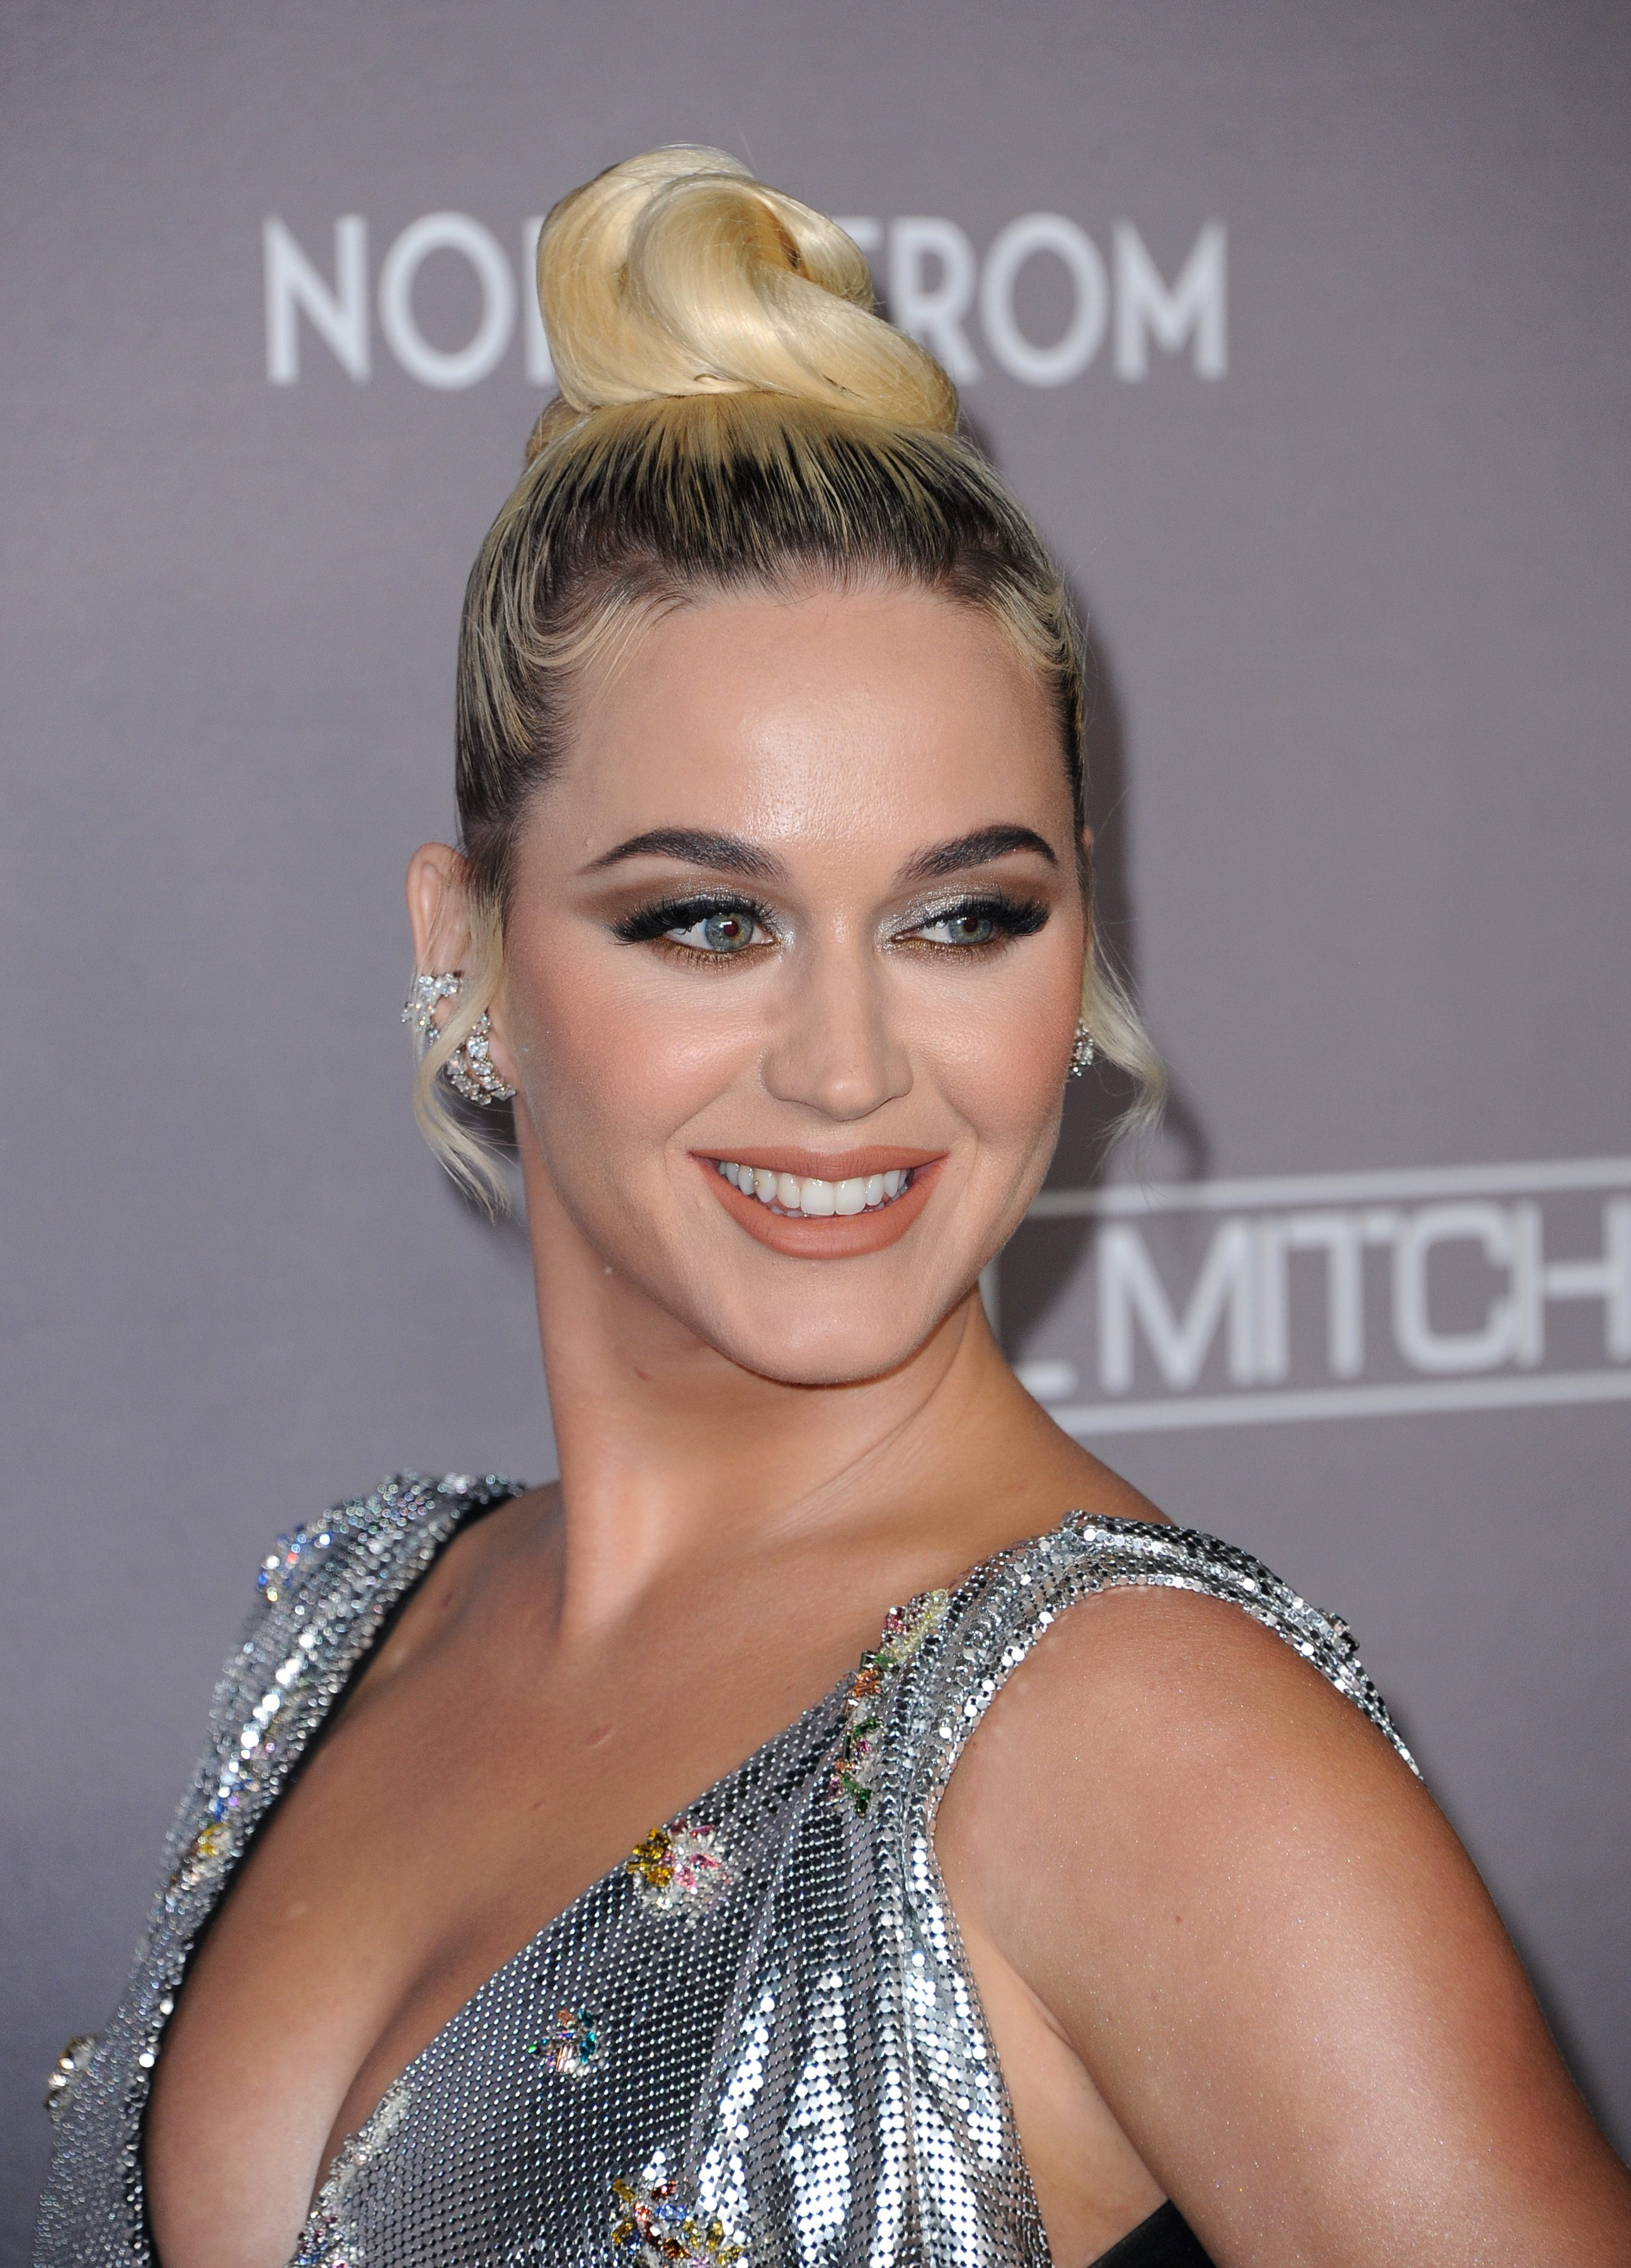 Katy Perry's Platinum Blonde Hair with Dark Roots